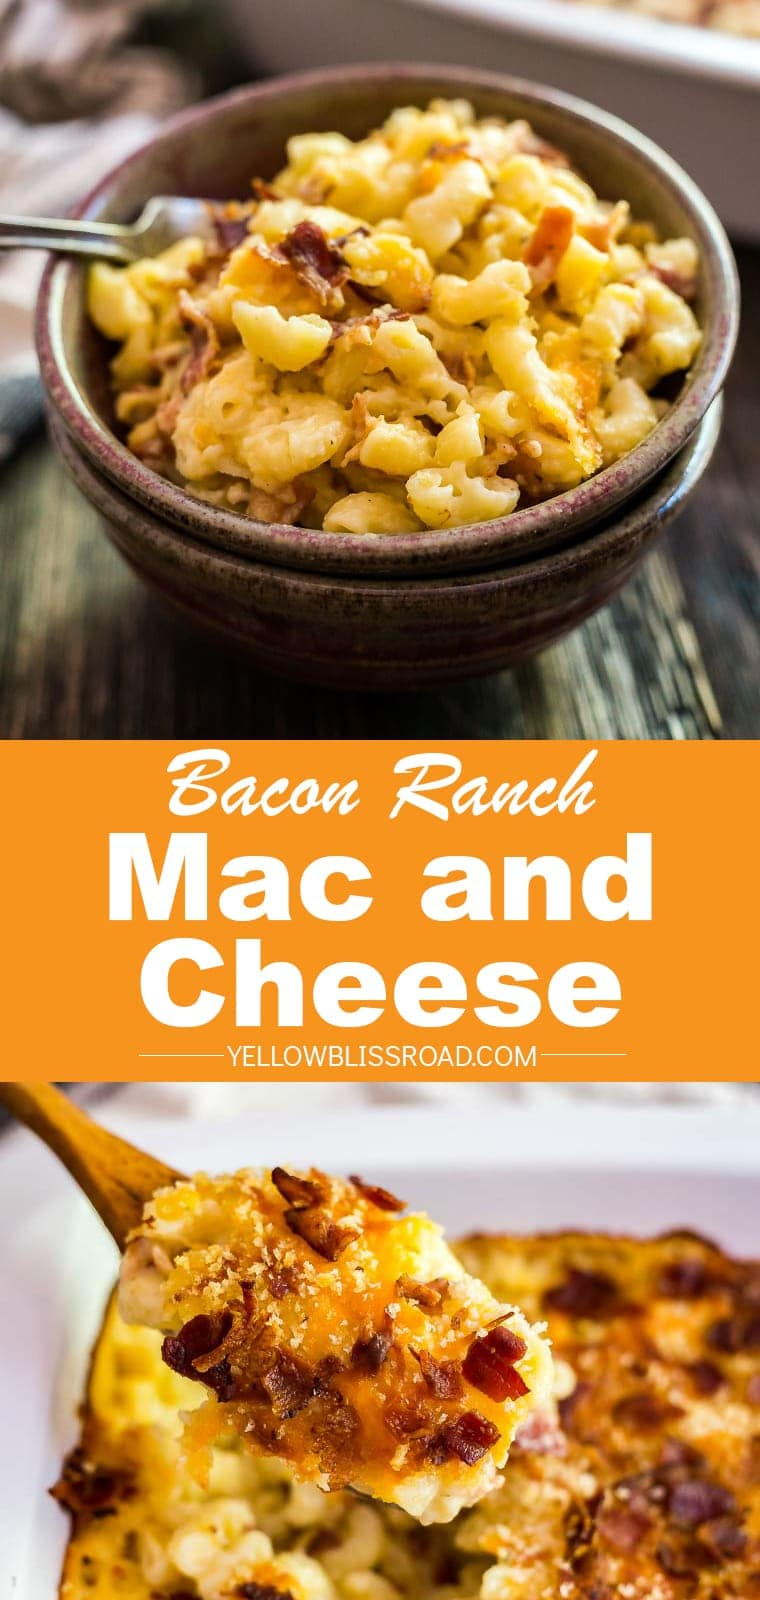 Bacon Ranch Mac and Cheese- a little smoky, a little zesty and super comforting and delicious. This is perfect for game day but quick enough to enjoy on a busy weeknight!